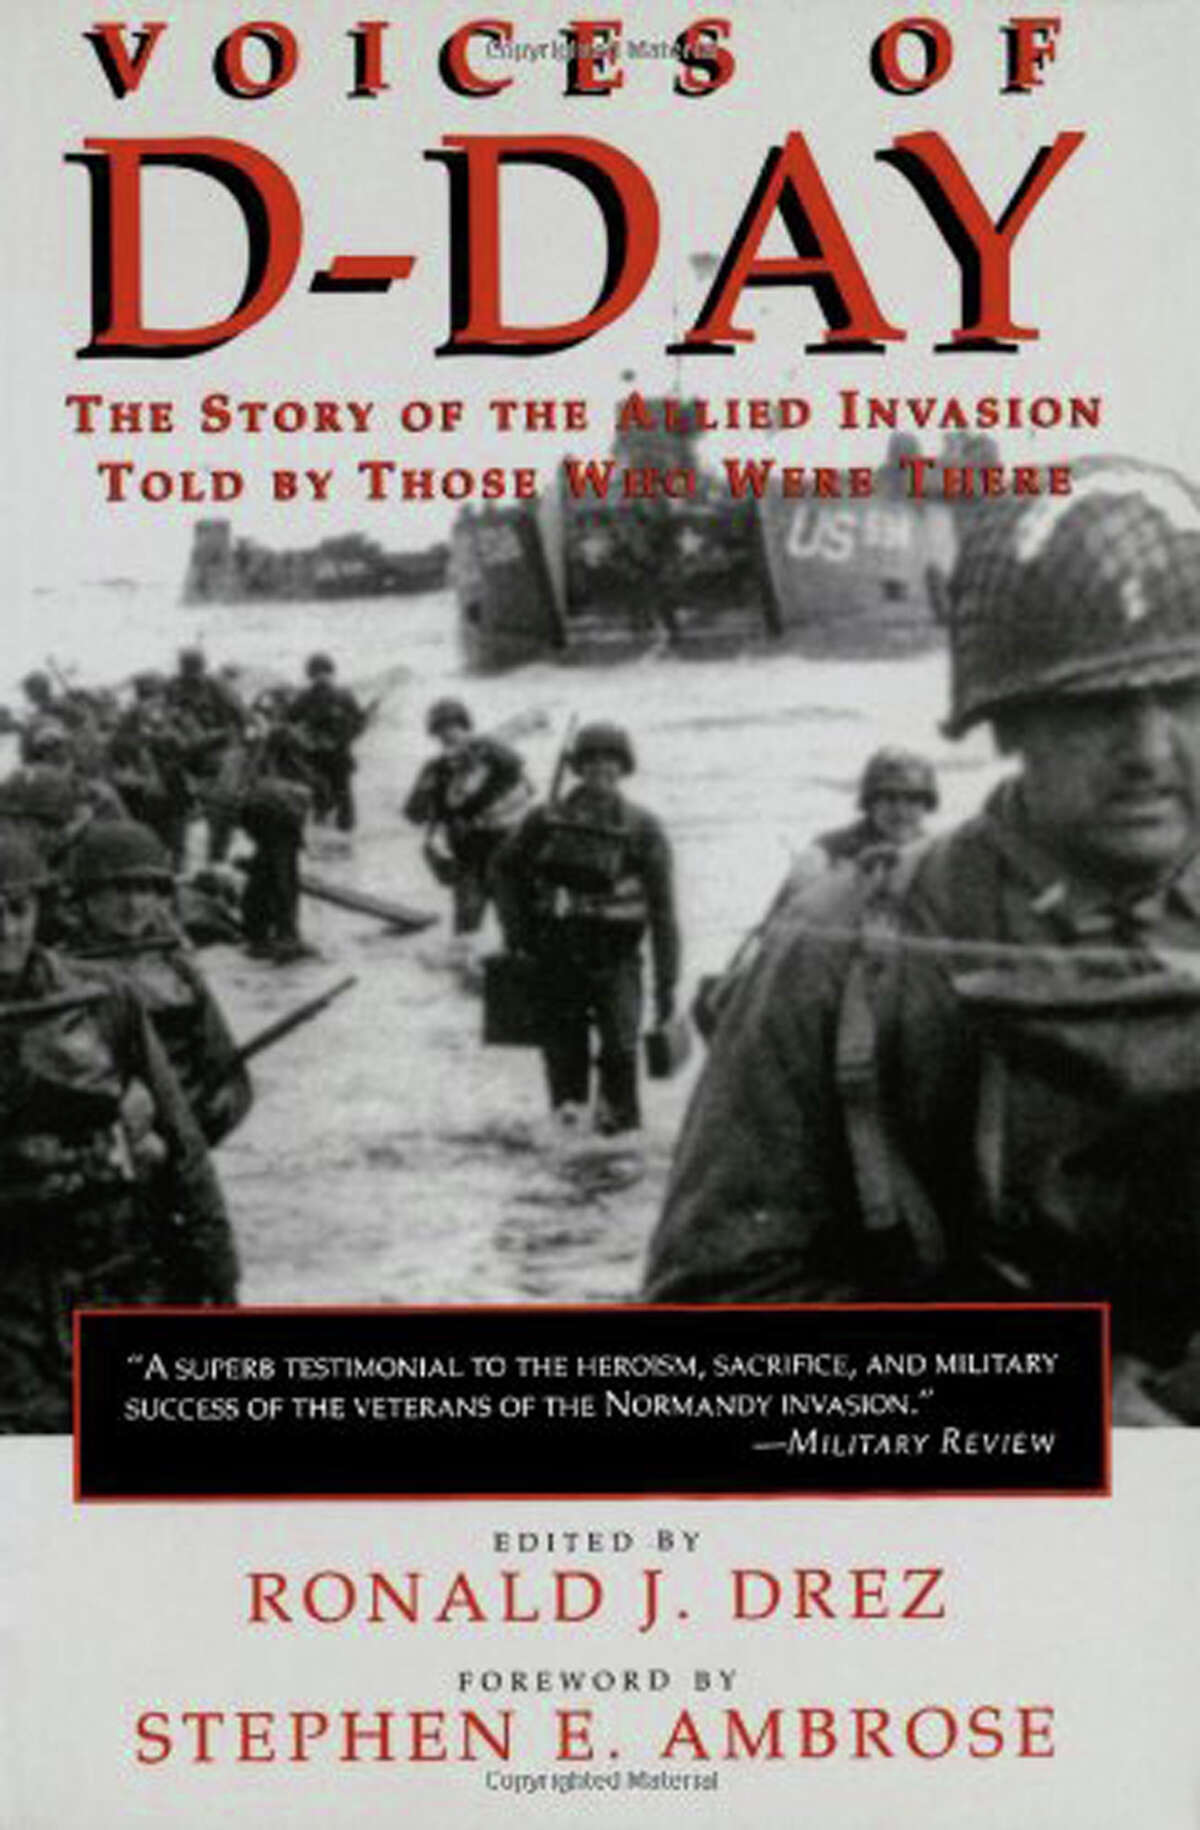 Voices of D-Day keeps memories live on through oral histories.